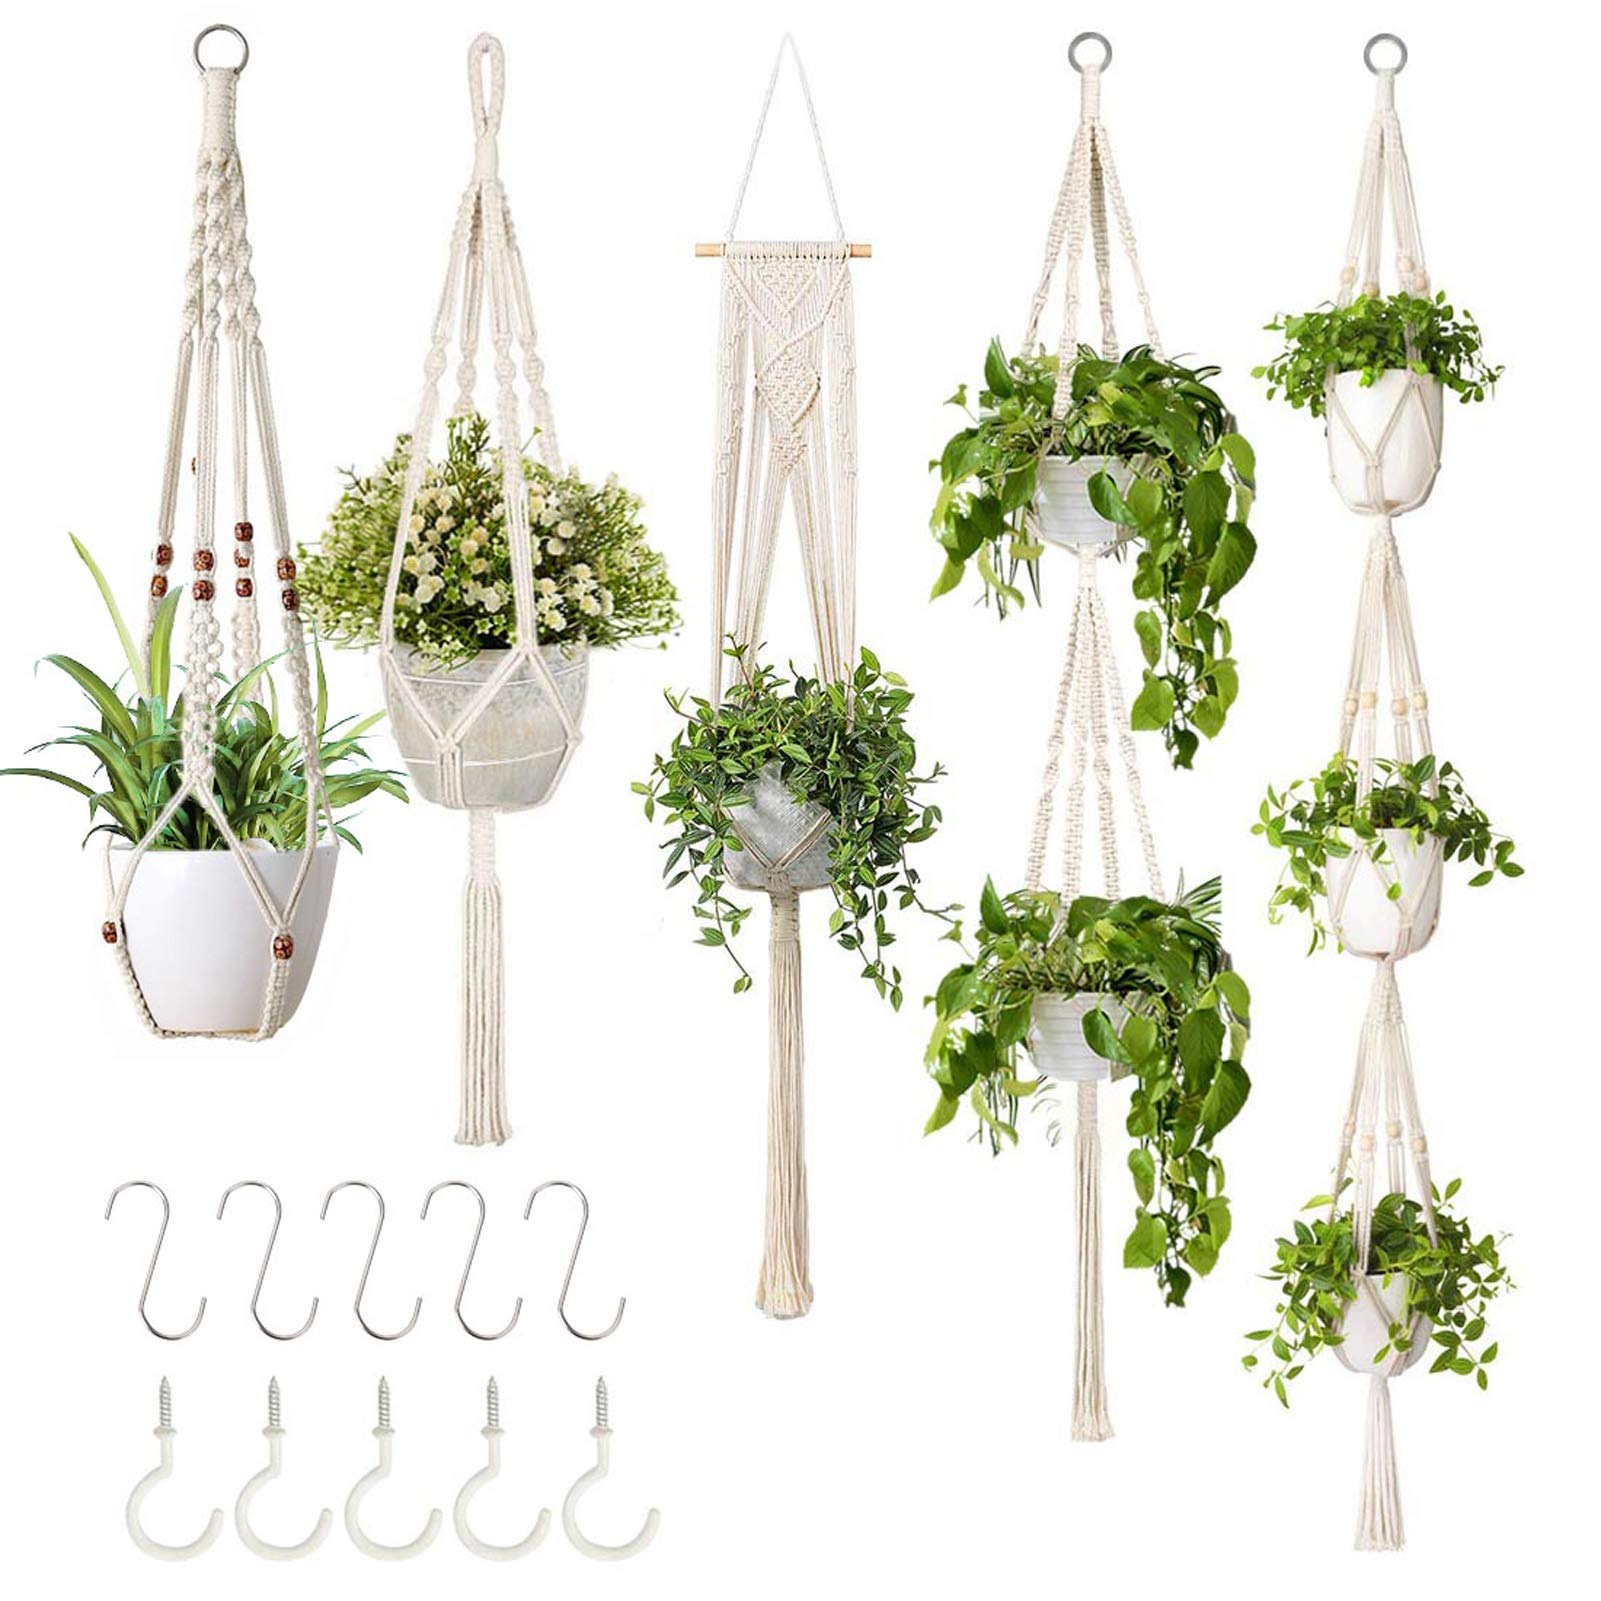 Handmade Cotton Rope Hanging Planters Set Flower Pots Holder Stand Hanging Plant Holder For Indoor Outdoor Boho Home Decor Different Tiers 6 Pieces Macrame Plant Hangers With 6 Hooks Hanging Planters